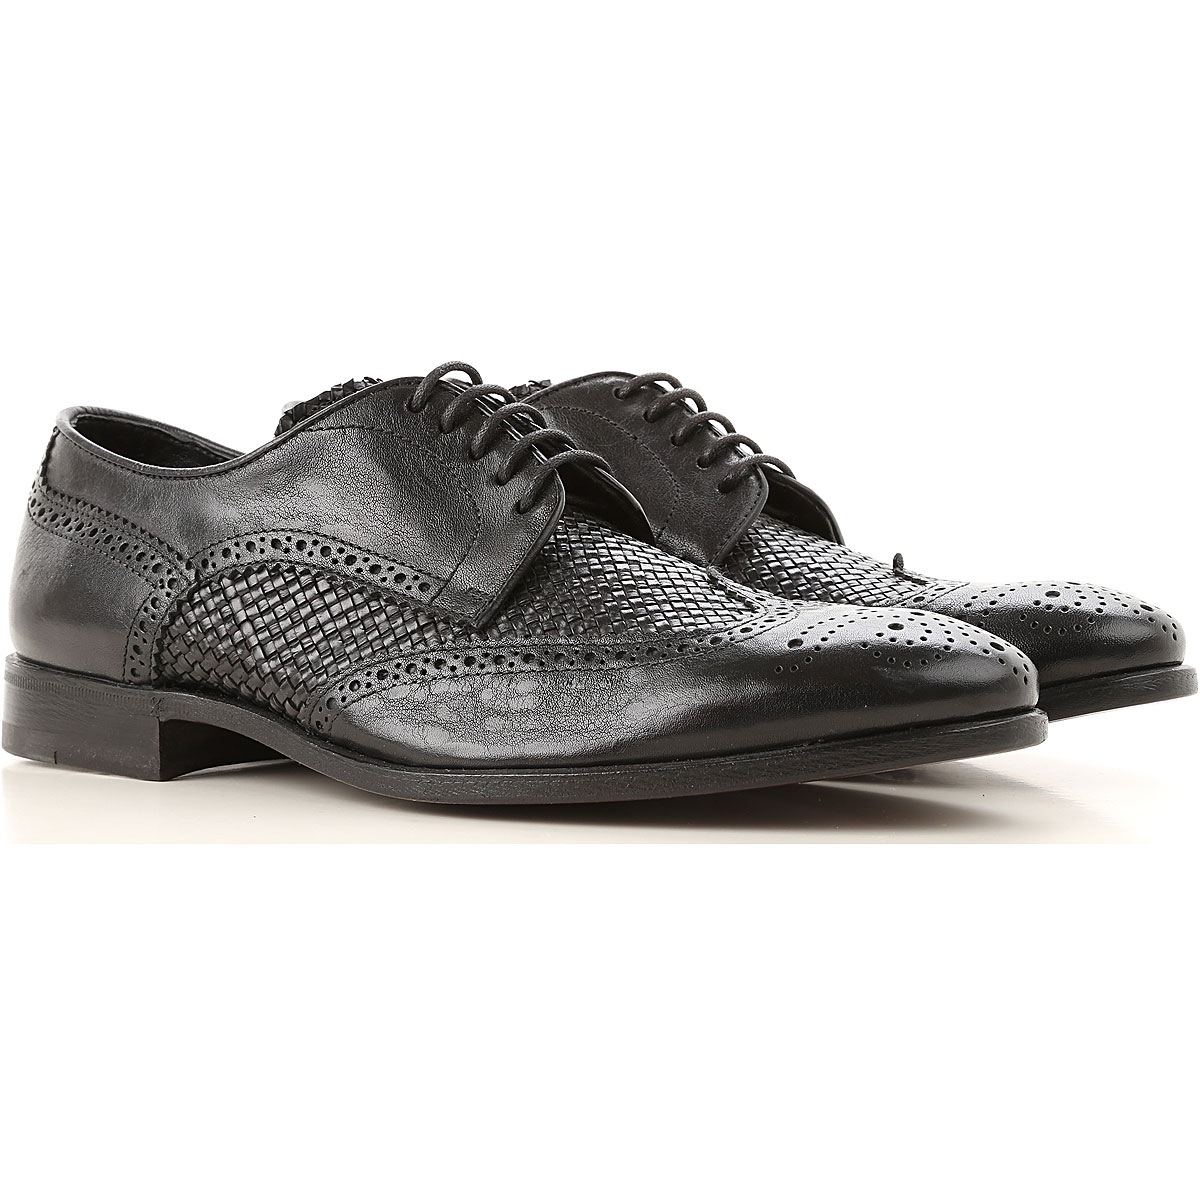 Henderson Lace Up Shoes for Men Oxfords, Derbies and Brogues, Black, Leather, 2019, 10 11 11.5 7 9.5